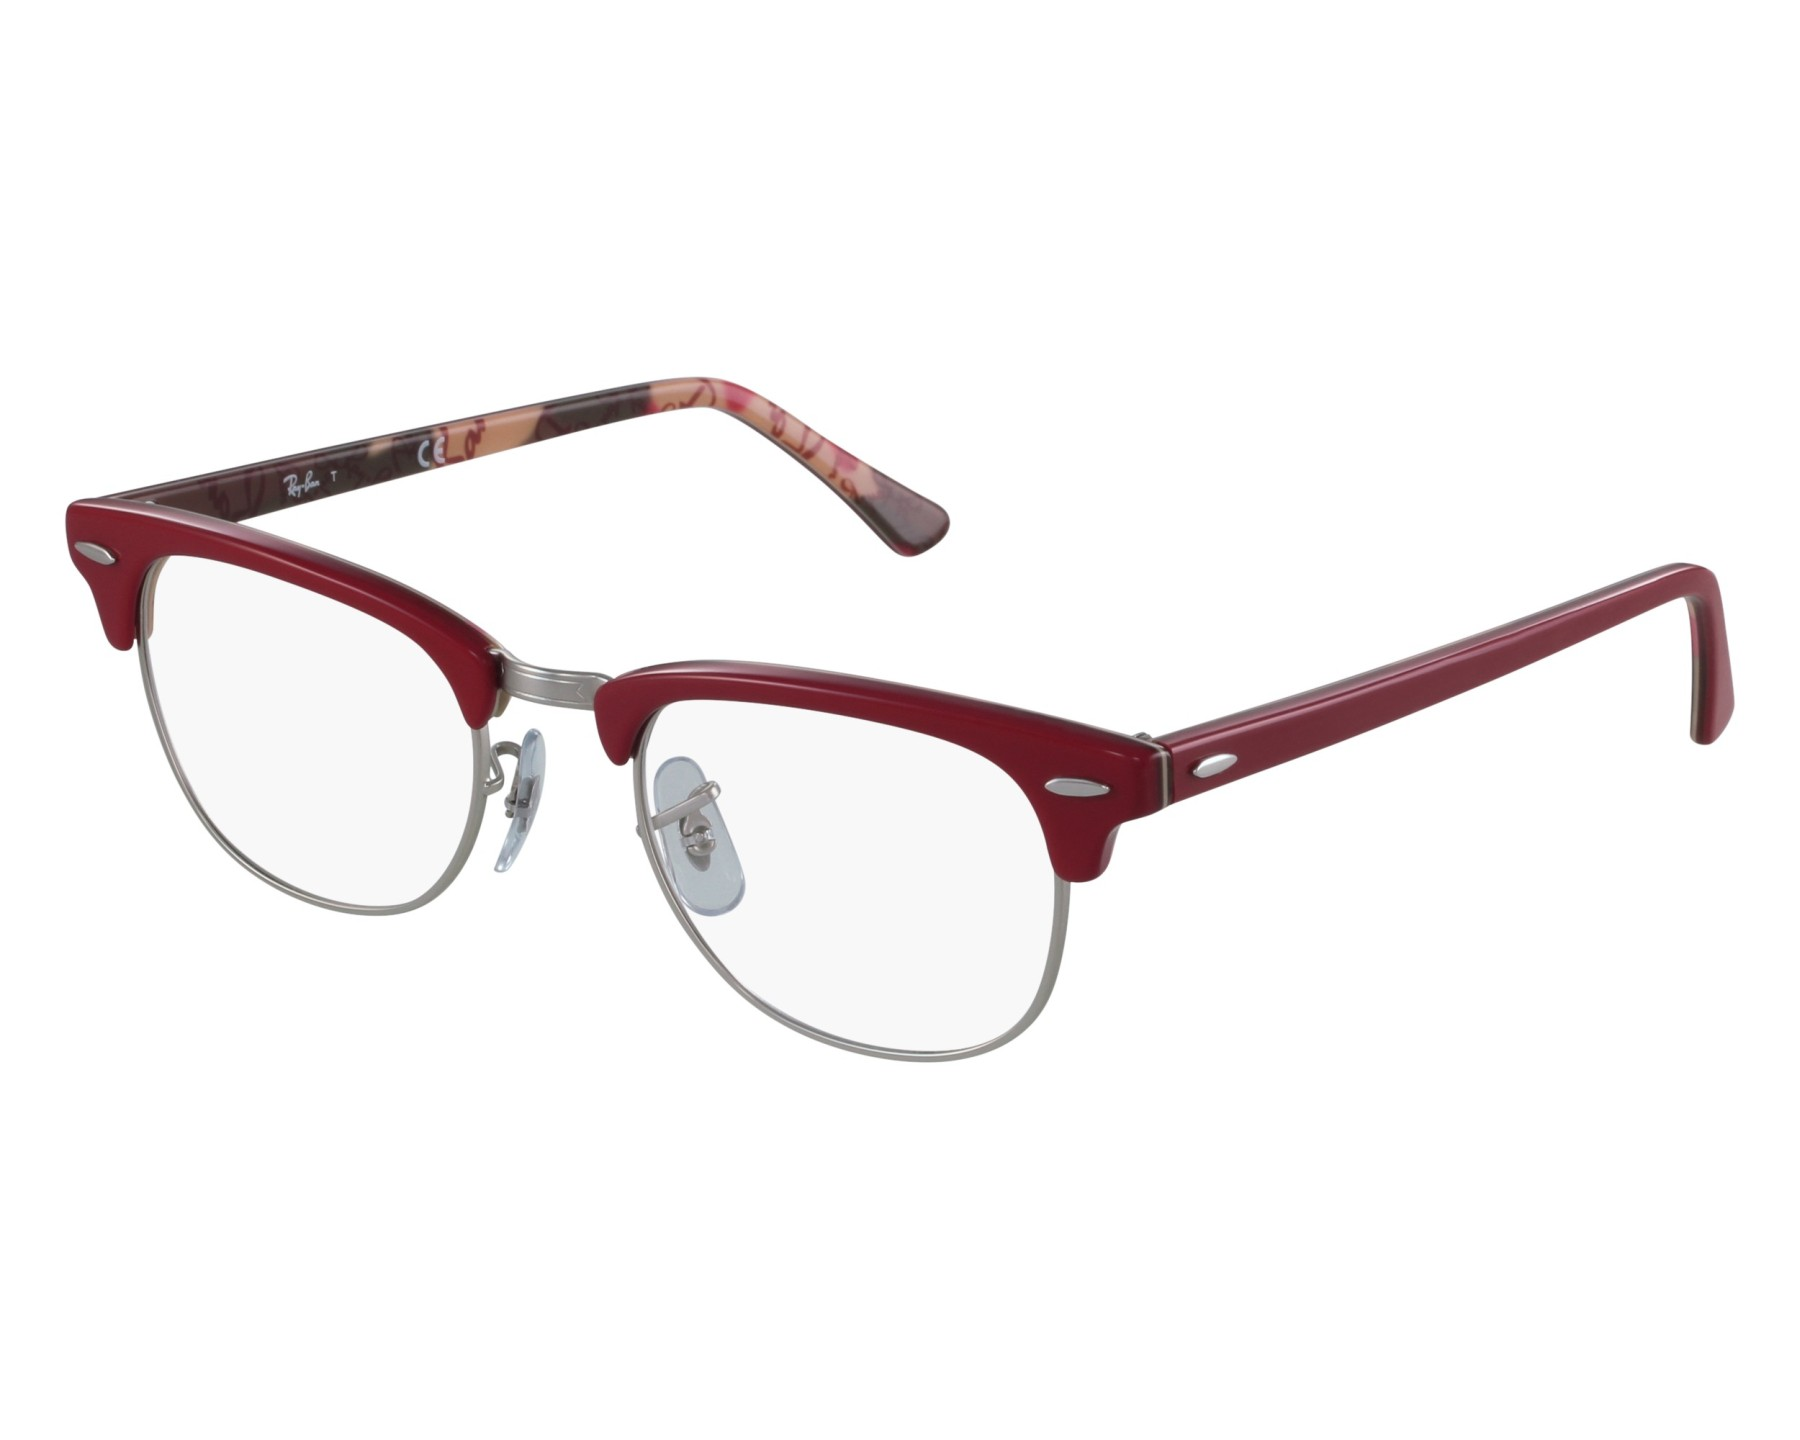 e5342a60679 eyeglasses Ray-Ban RX-5154 5651 49-21 Red front view